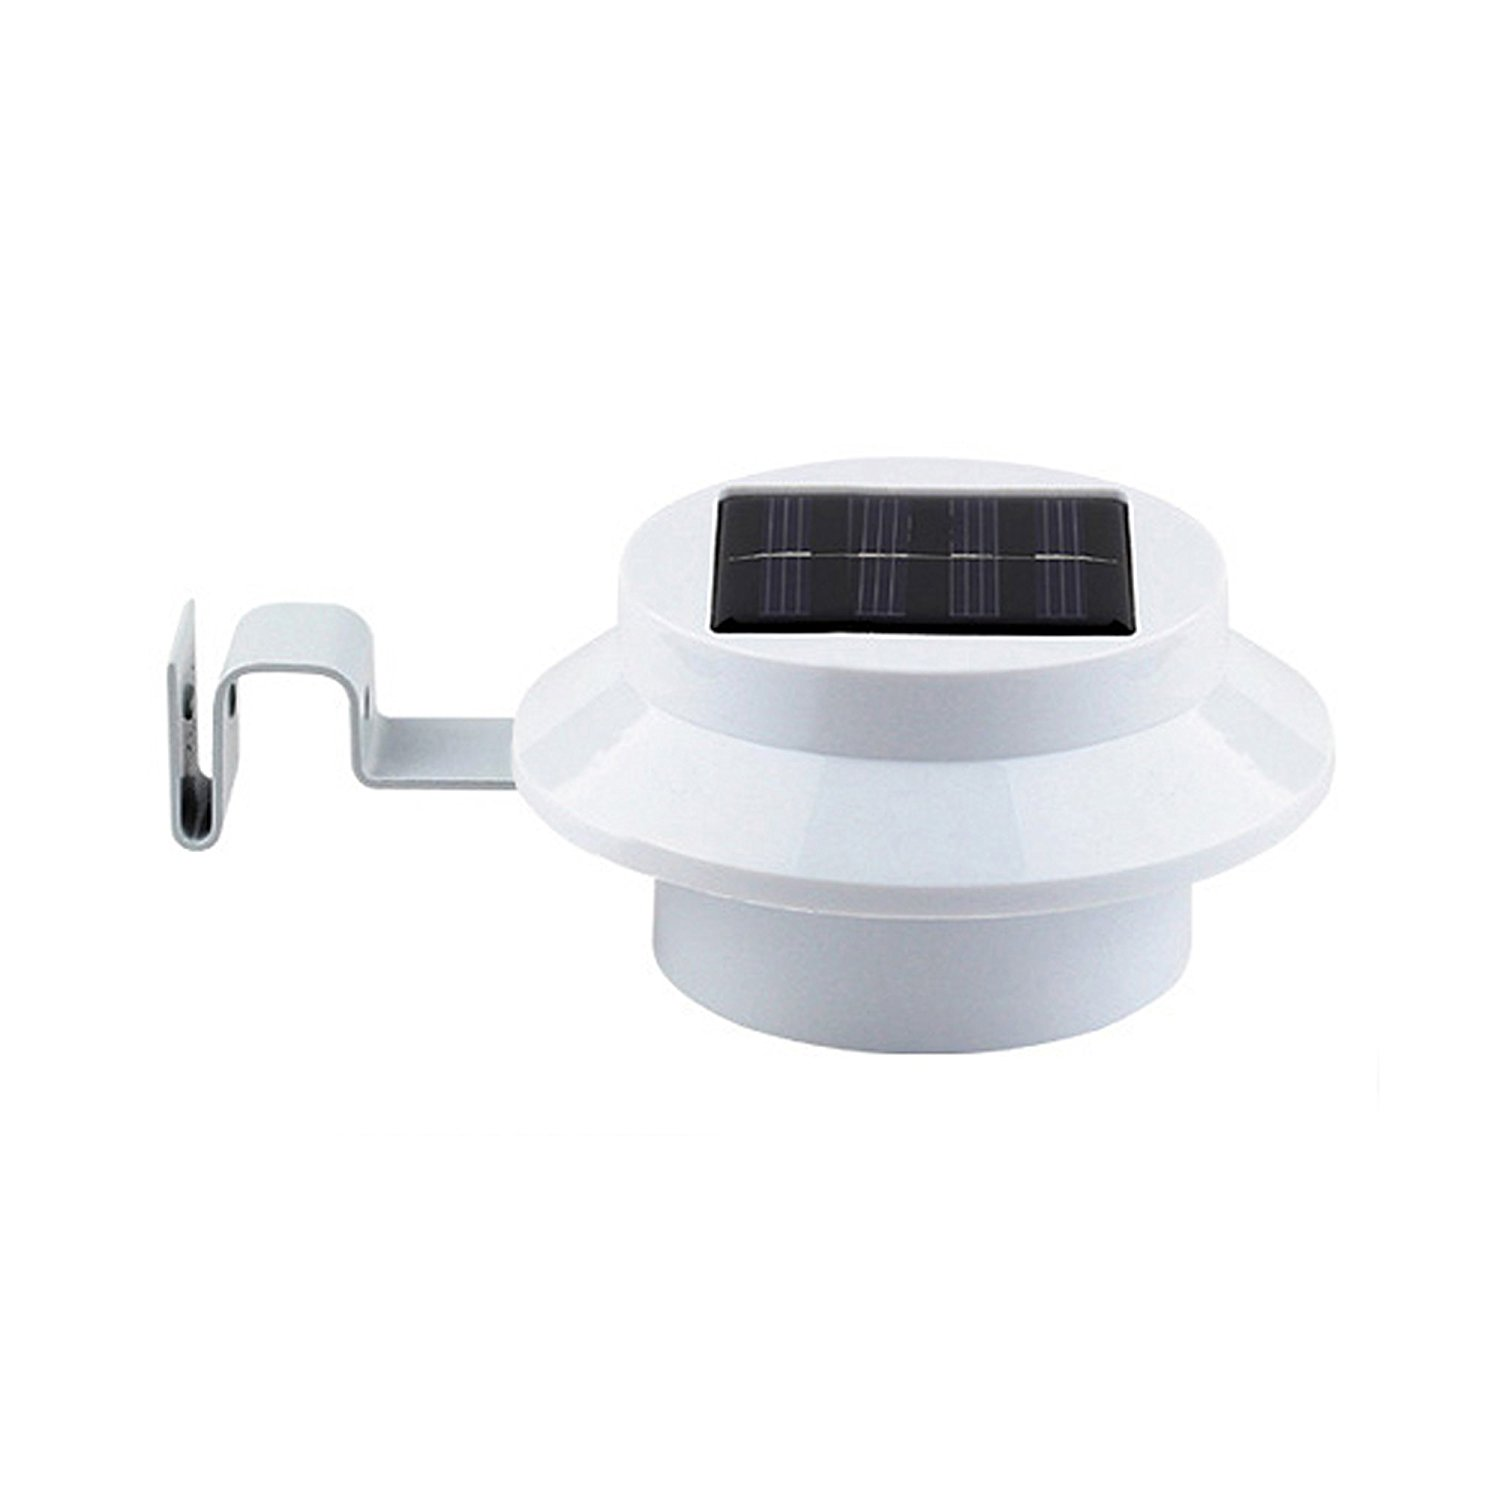 White Sun Power Smart LED Solar Gutter Night Utility Security Light for indoor outdoor permanent or portable for any house, fence, garden, garage, shed, walkways, stairs - anywhere safety lite.